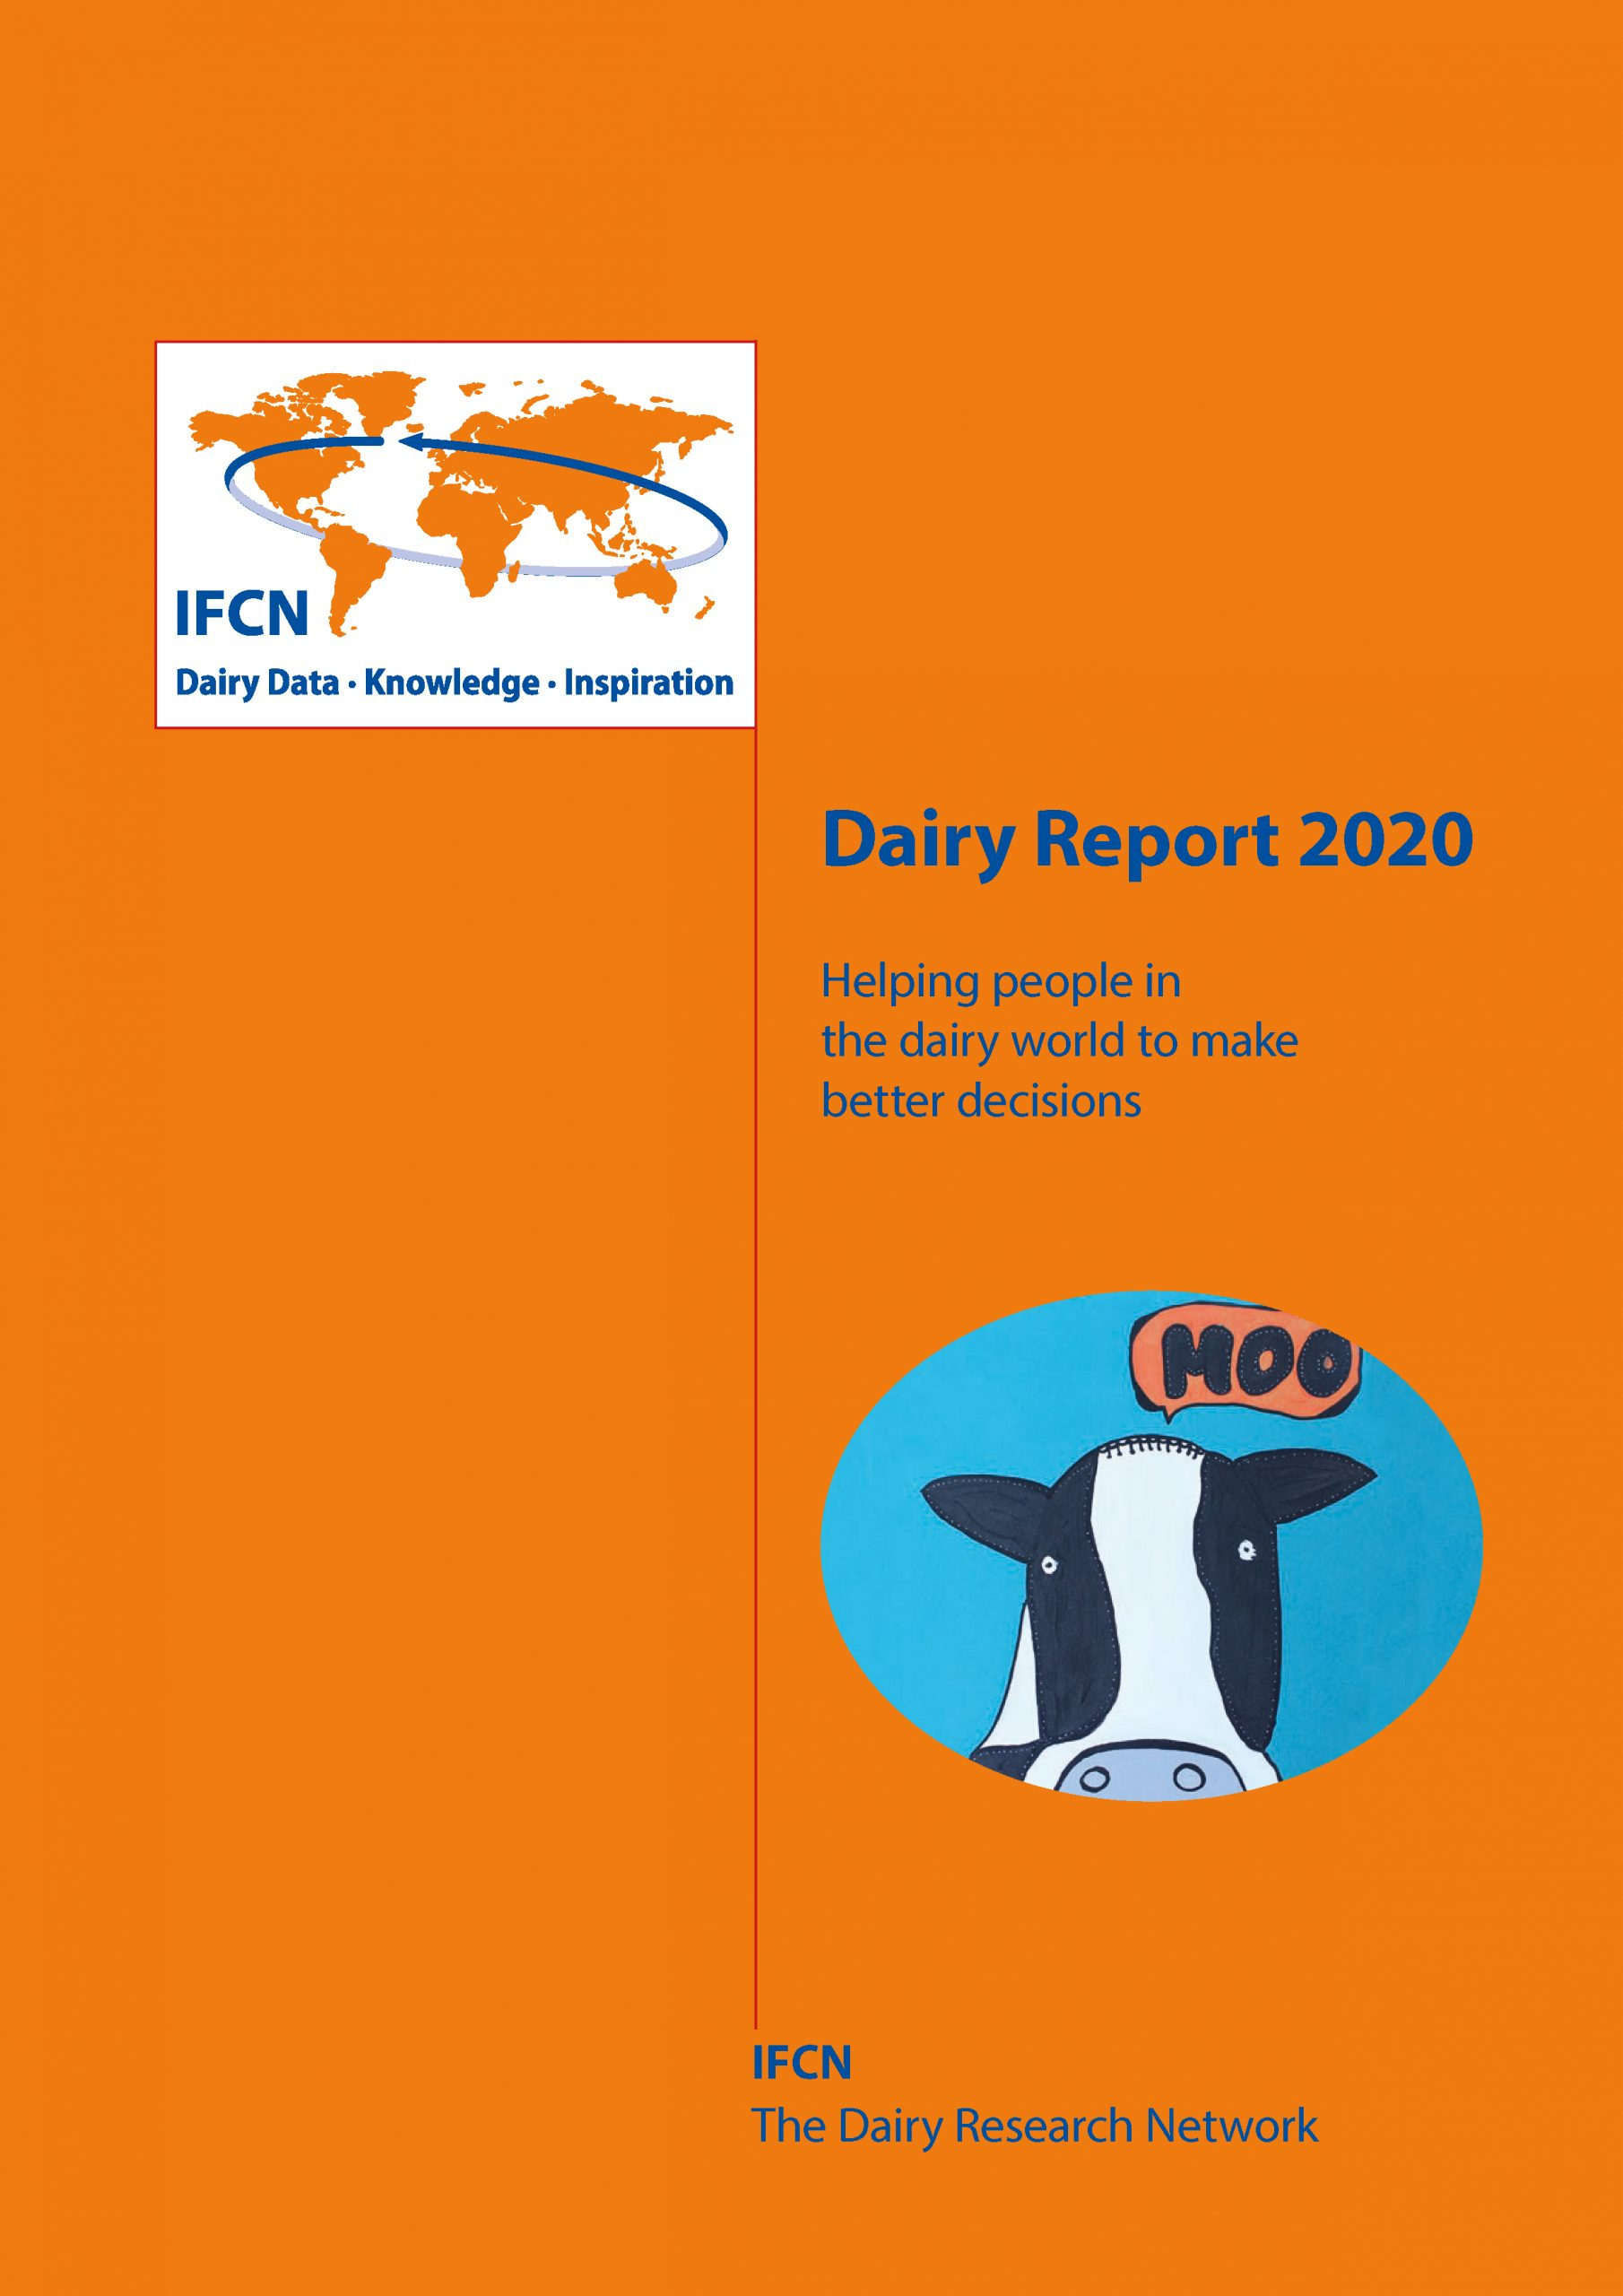 Dairy Report 2020